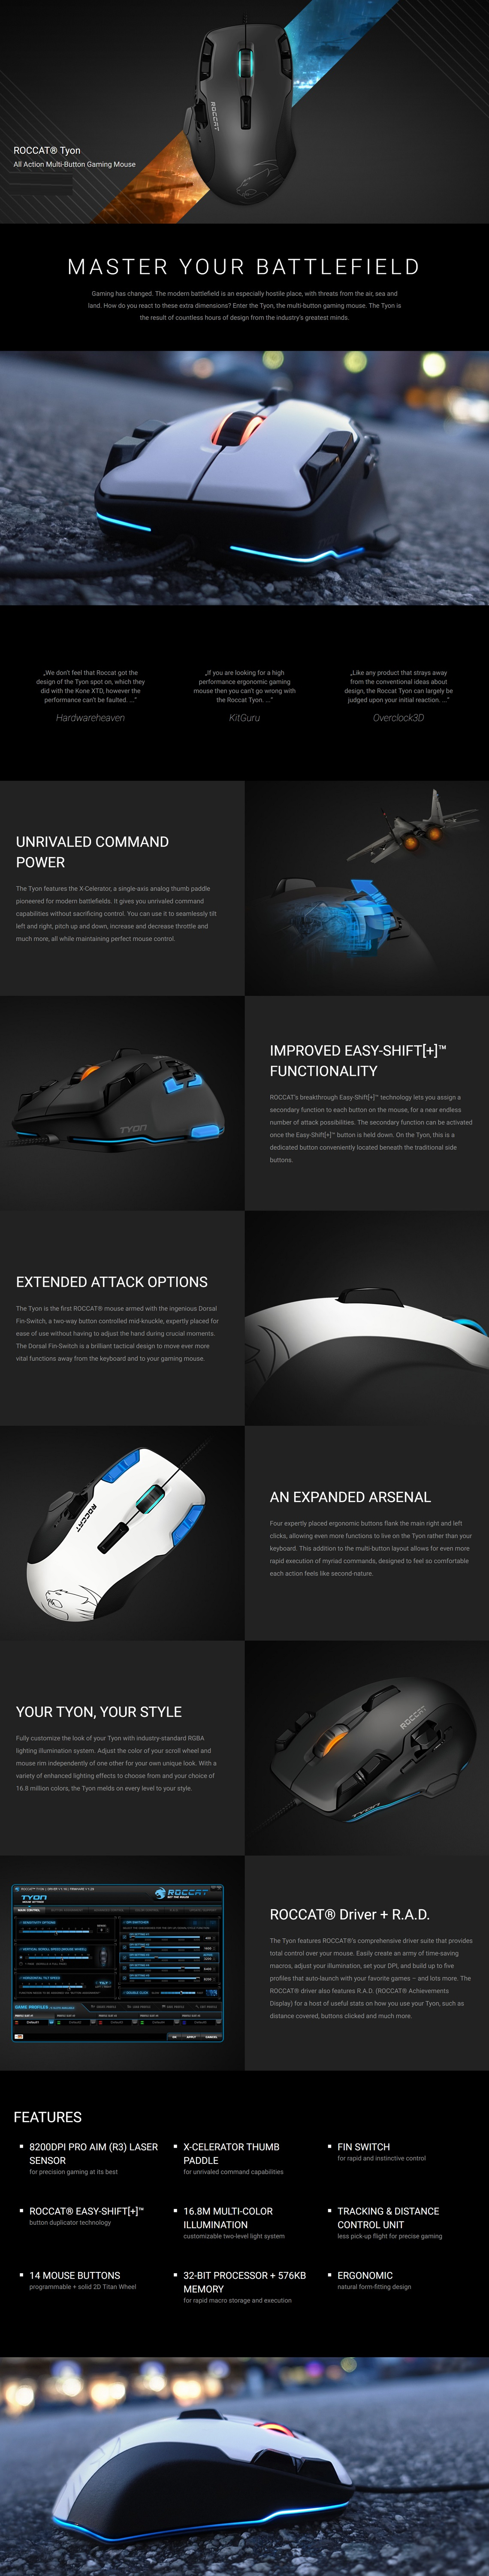 Roccat Tyon All Action Multi-Button Gaming Mouse Pro-Aim Laser Sensor R3 8200dpi